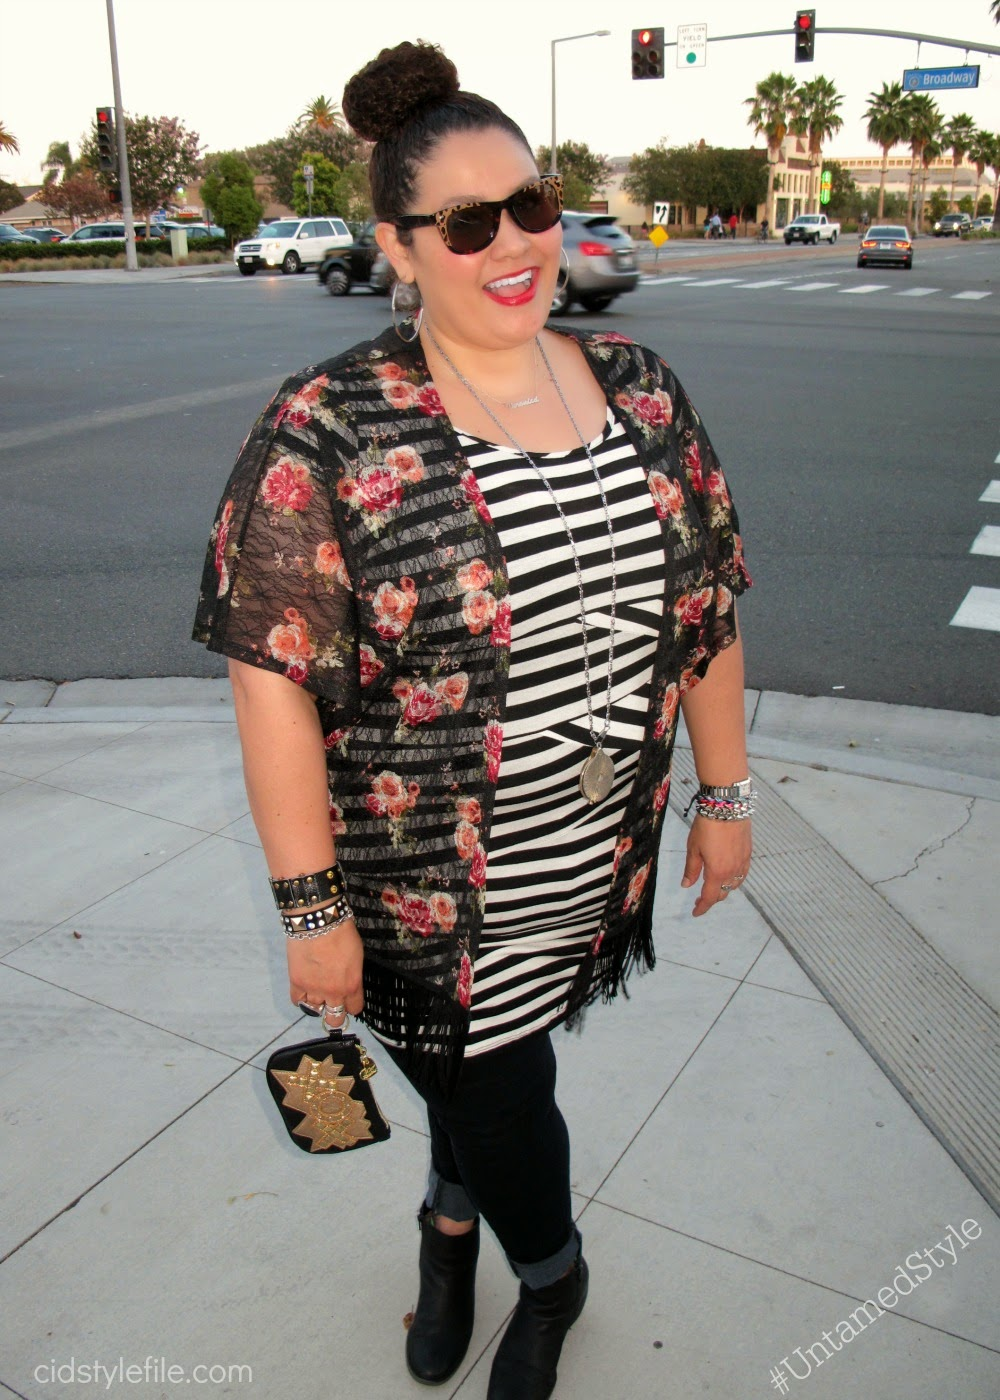 plus size fashion, latina style blogger, wet seal plus, g stage, style icon, untamed style, cid style file